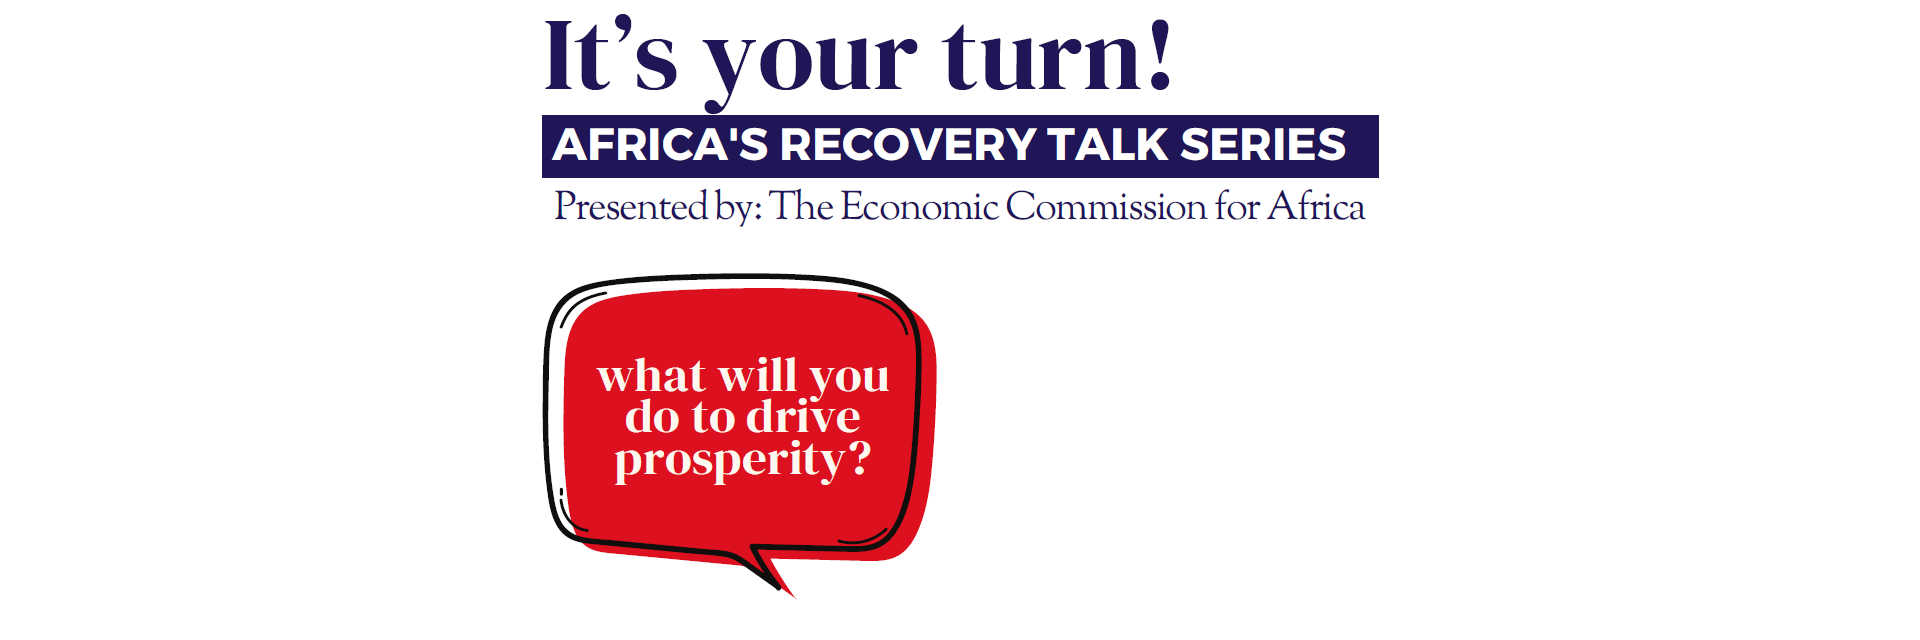 It's your turn! AFRICA'S RECOVERY TALK SERIES